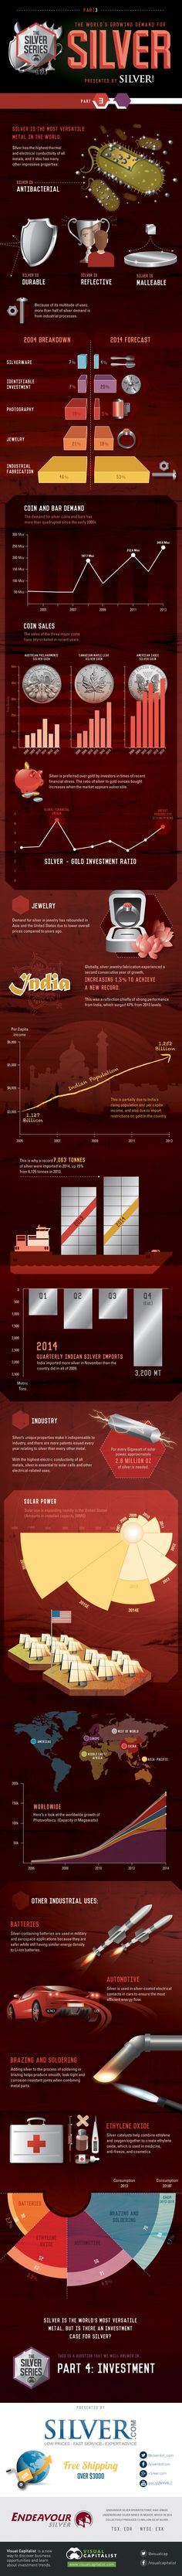 [INFOGRAPHIC] Appetite for silver: The world's growing demand | Operations | Mining Global